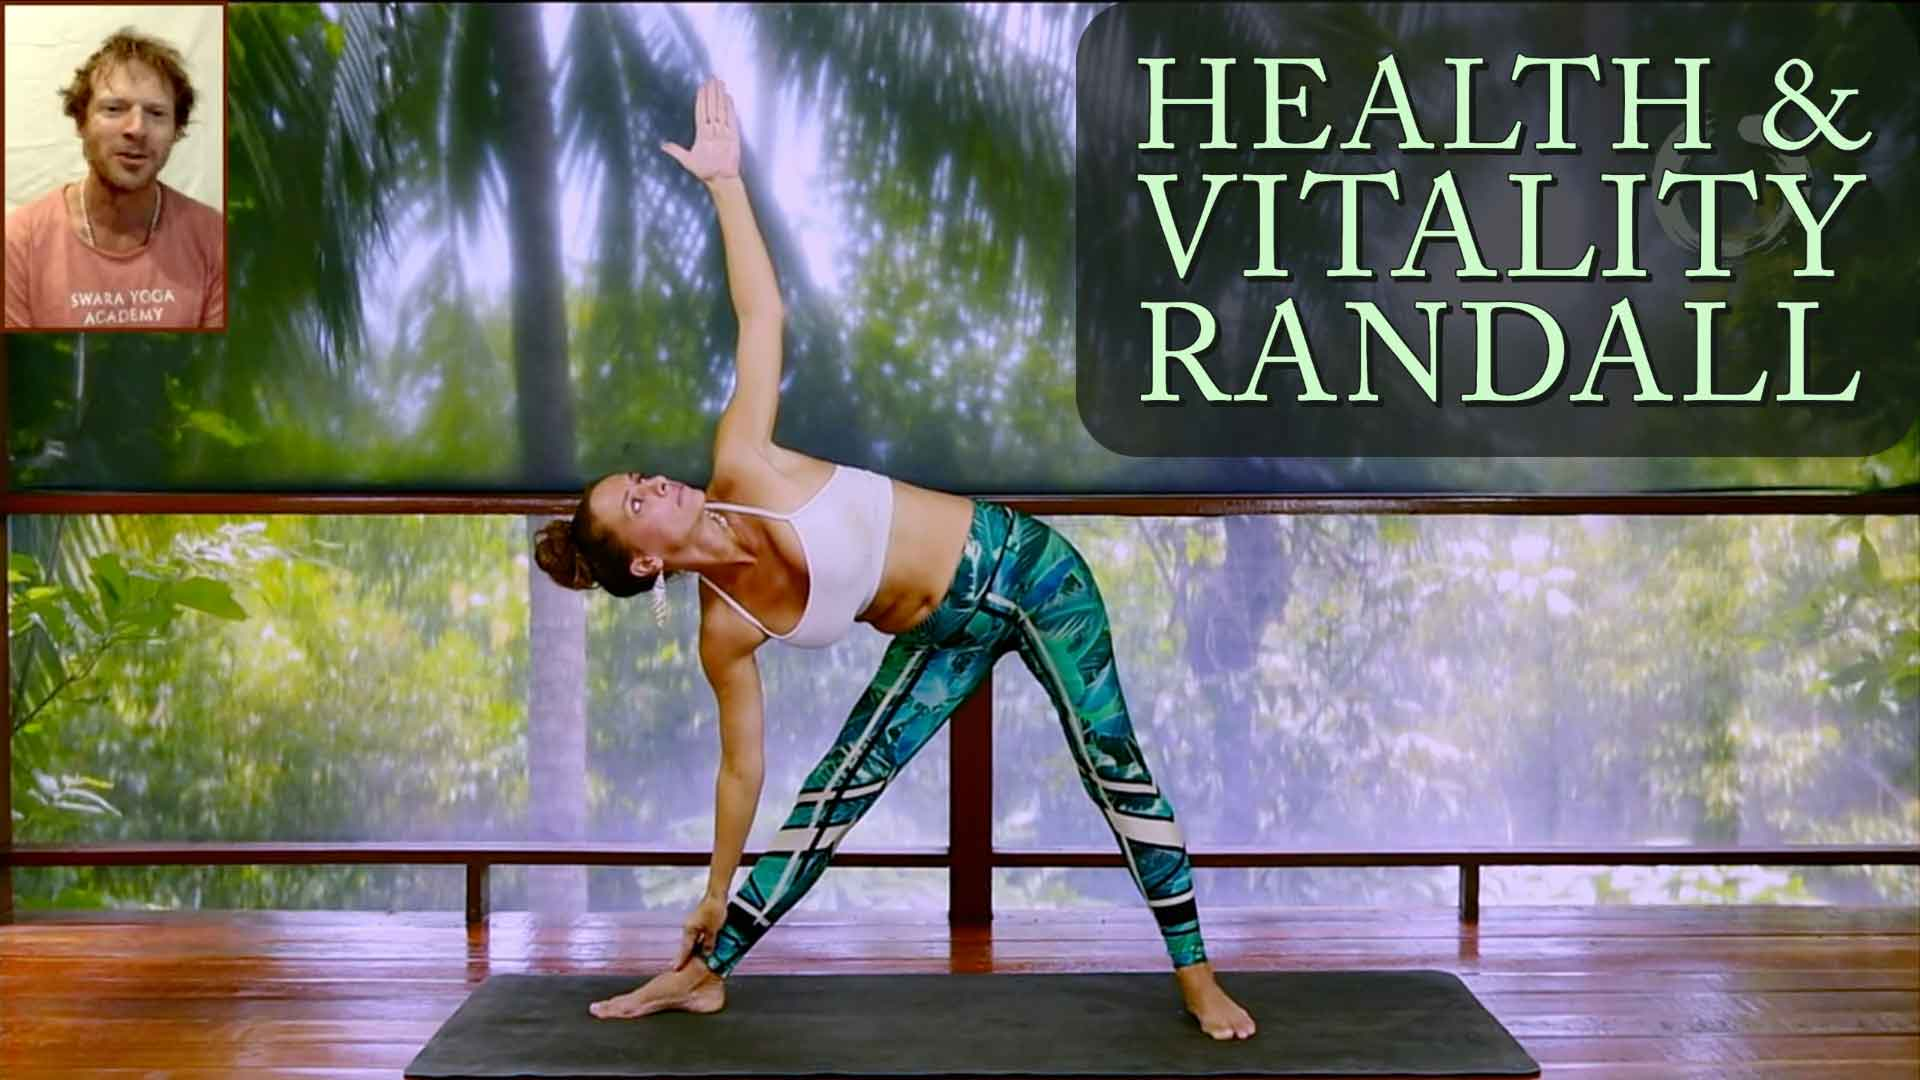 Yoga for Health & Vitality Yoga Workshop - Randall | Online Yoga Classes